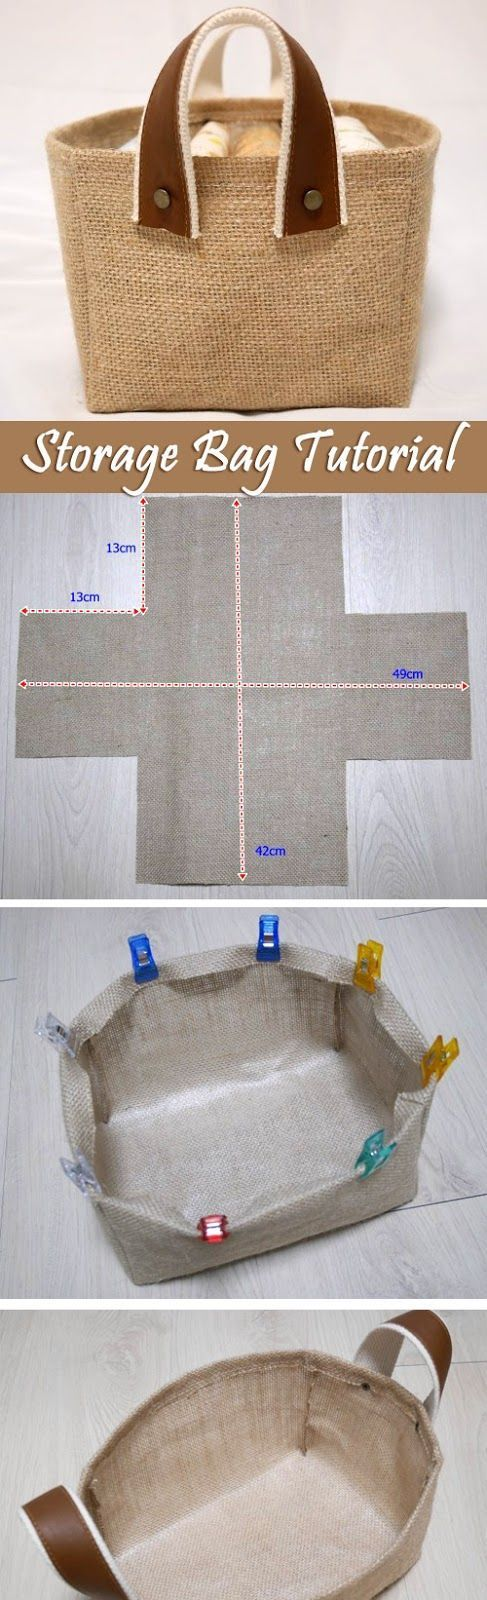 Storage Fabric Burlap Box Pattern and Tutorial. Bag Step by step photo tutorial…: